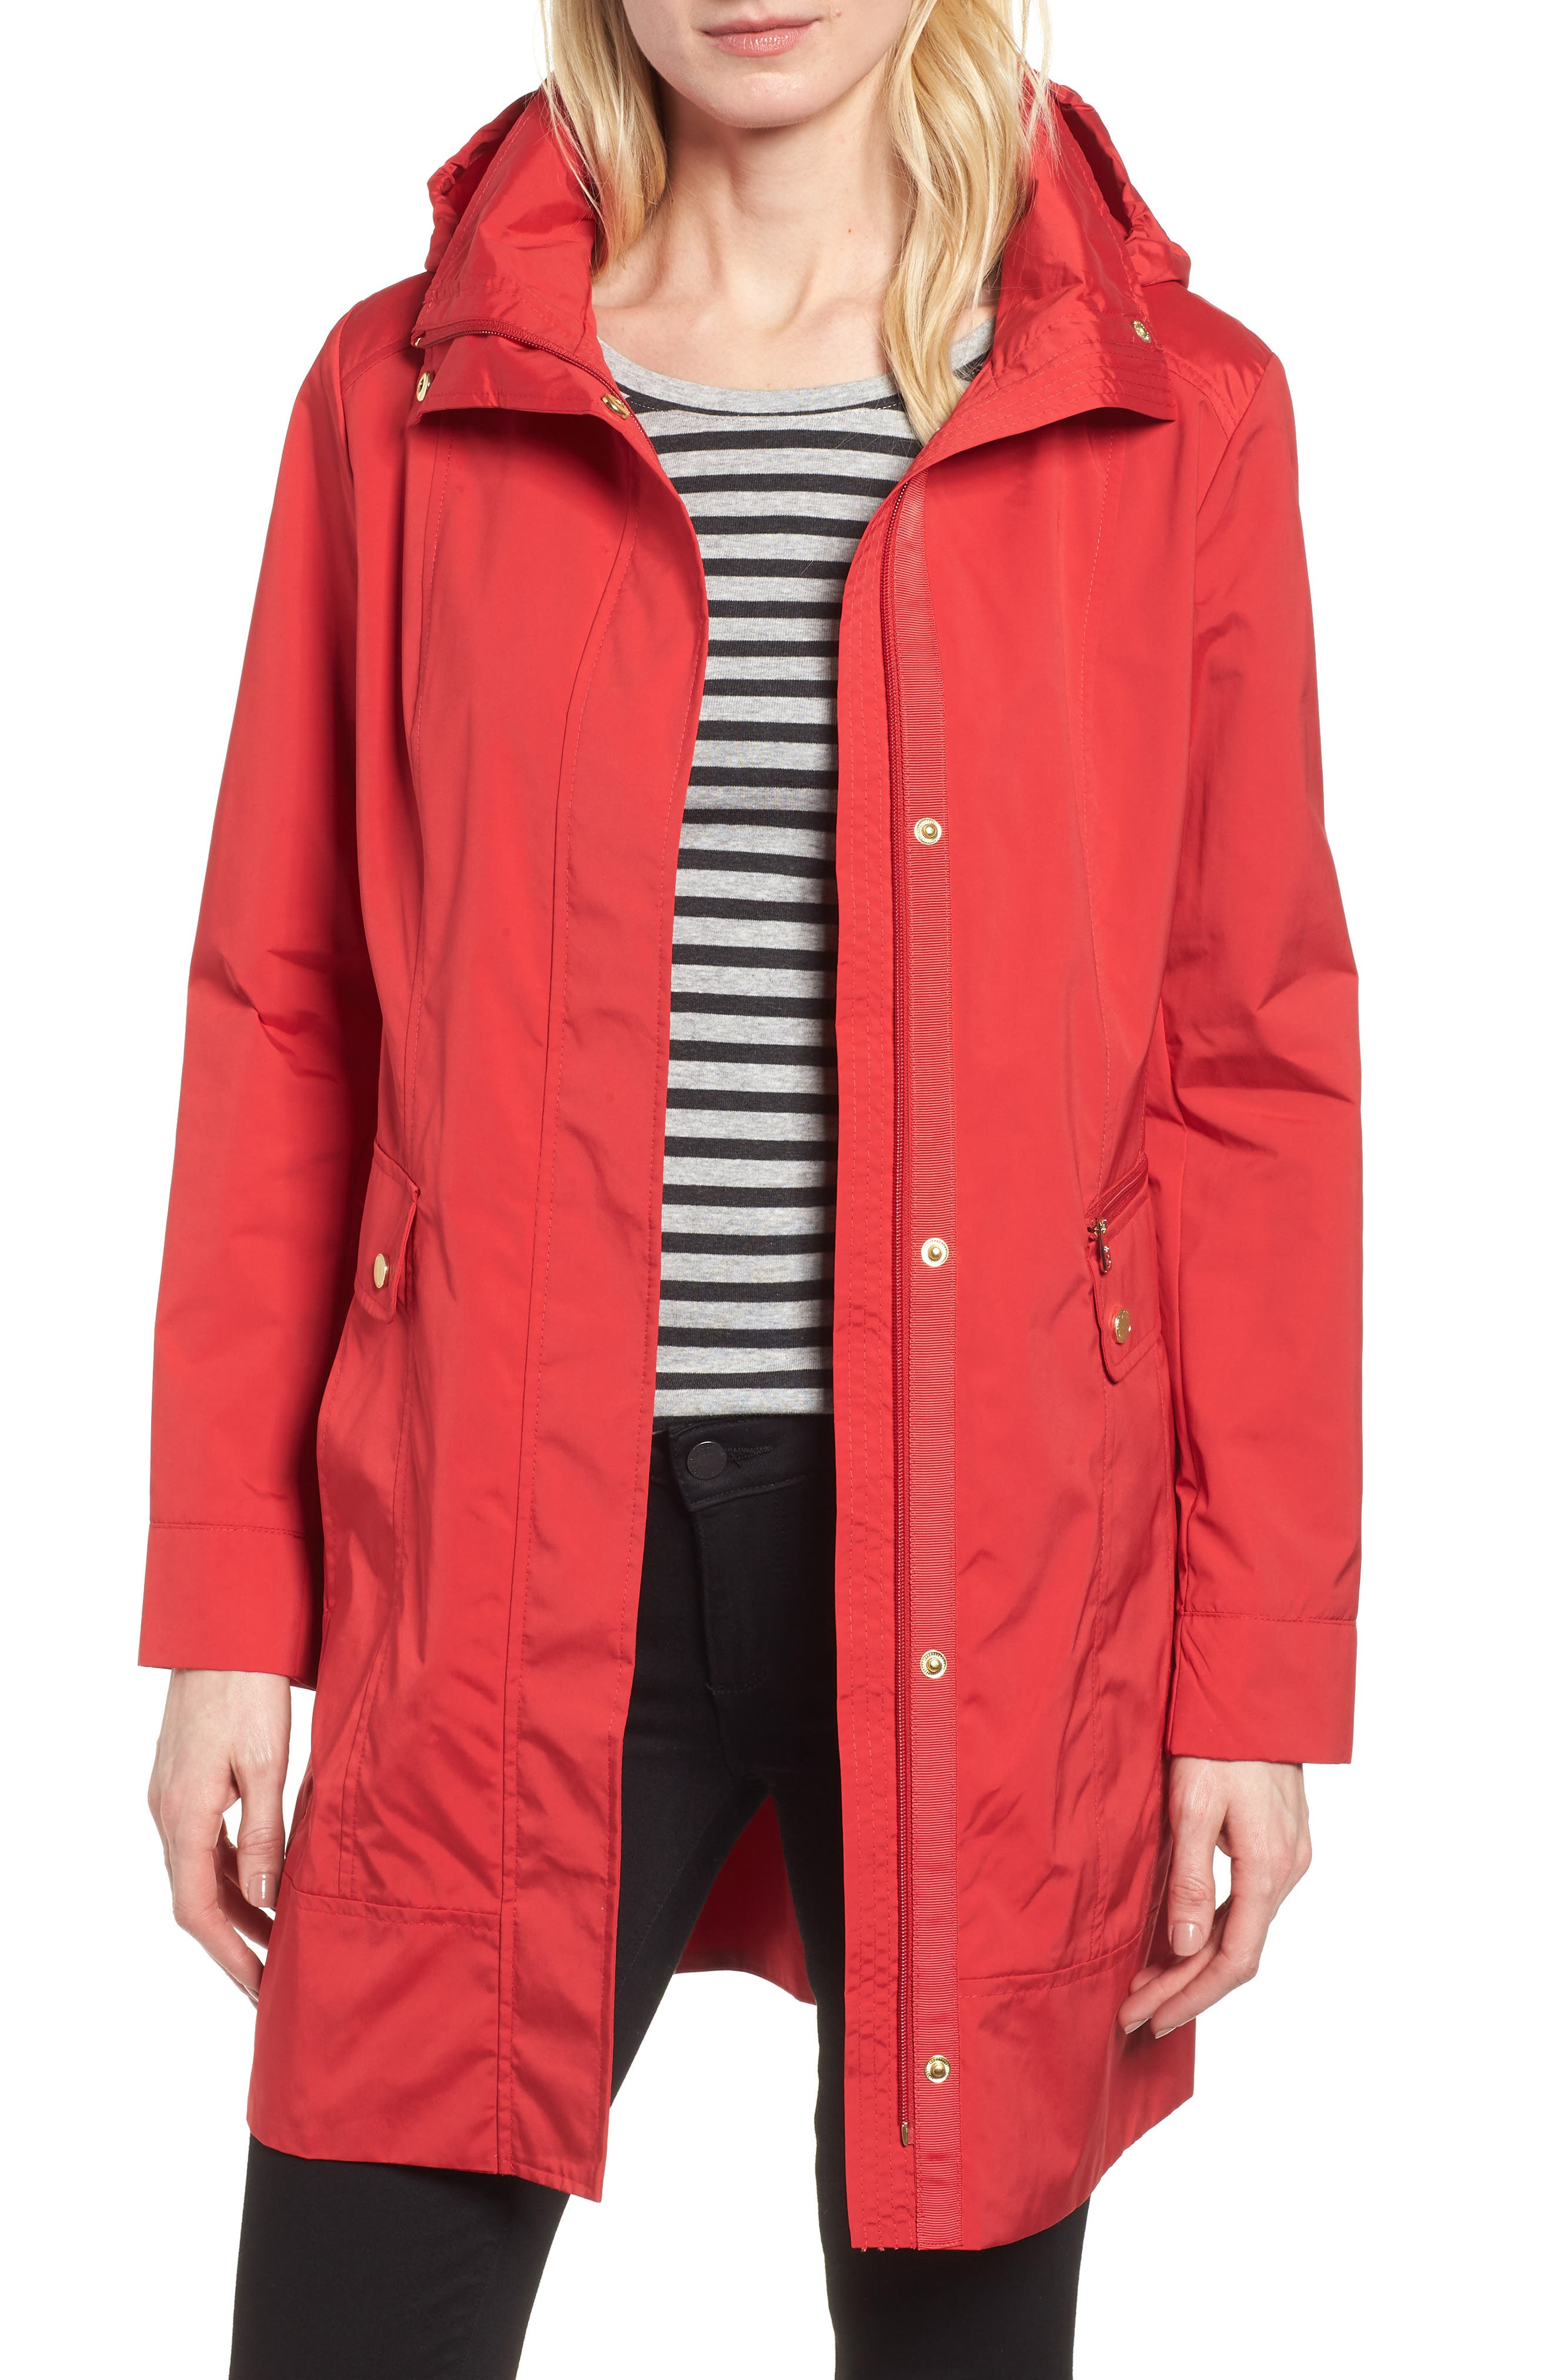 Petite Cole Haan Signature Back Bow Packable Hooded Raincoat, Red